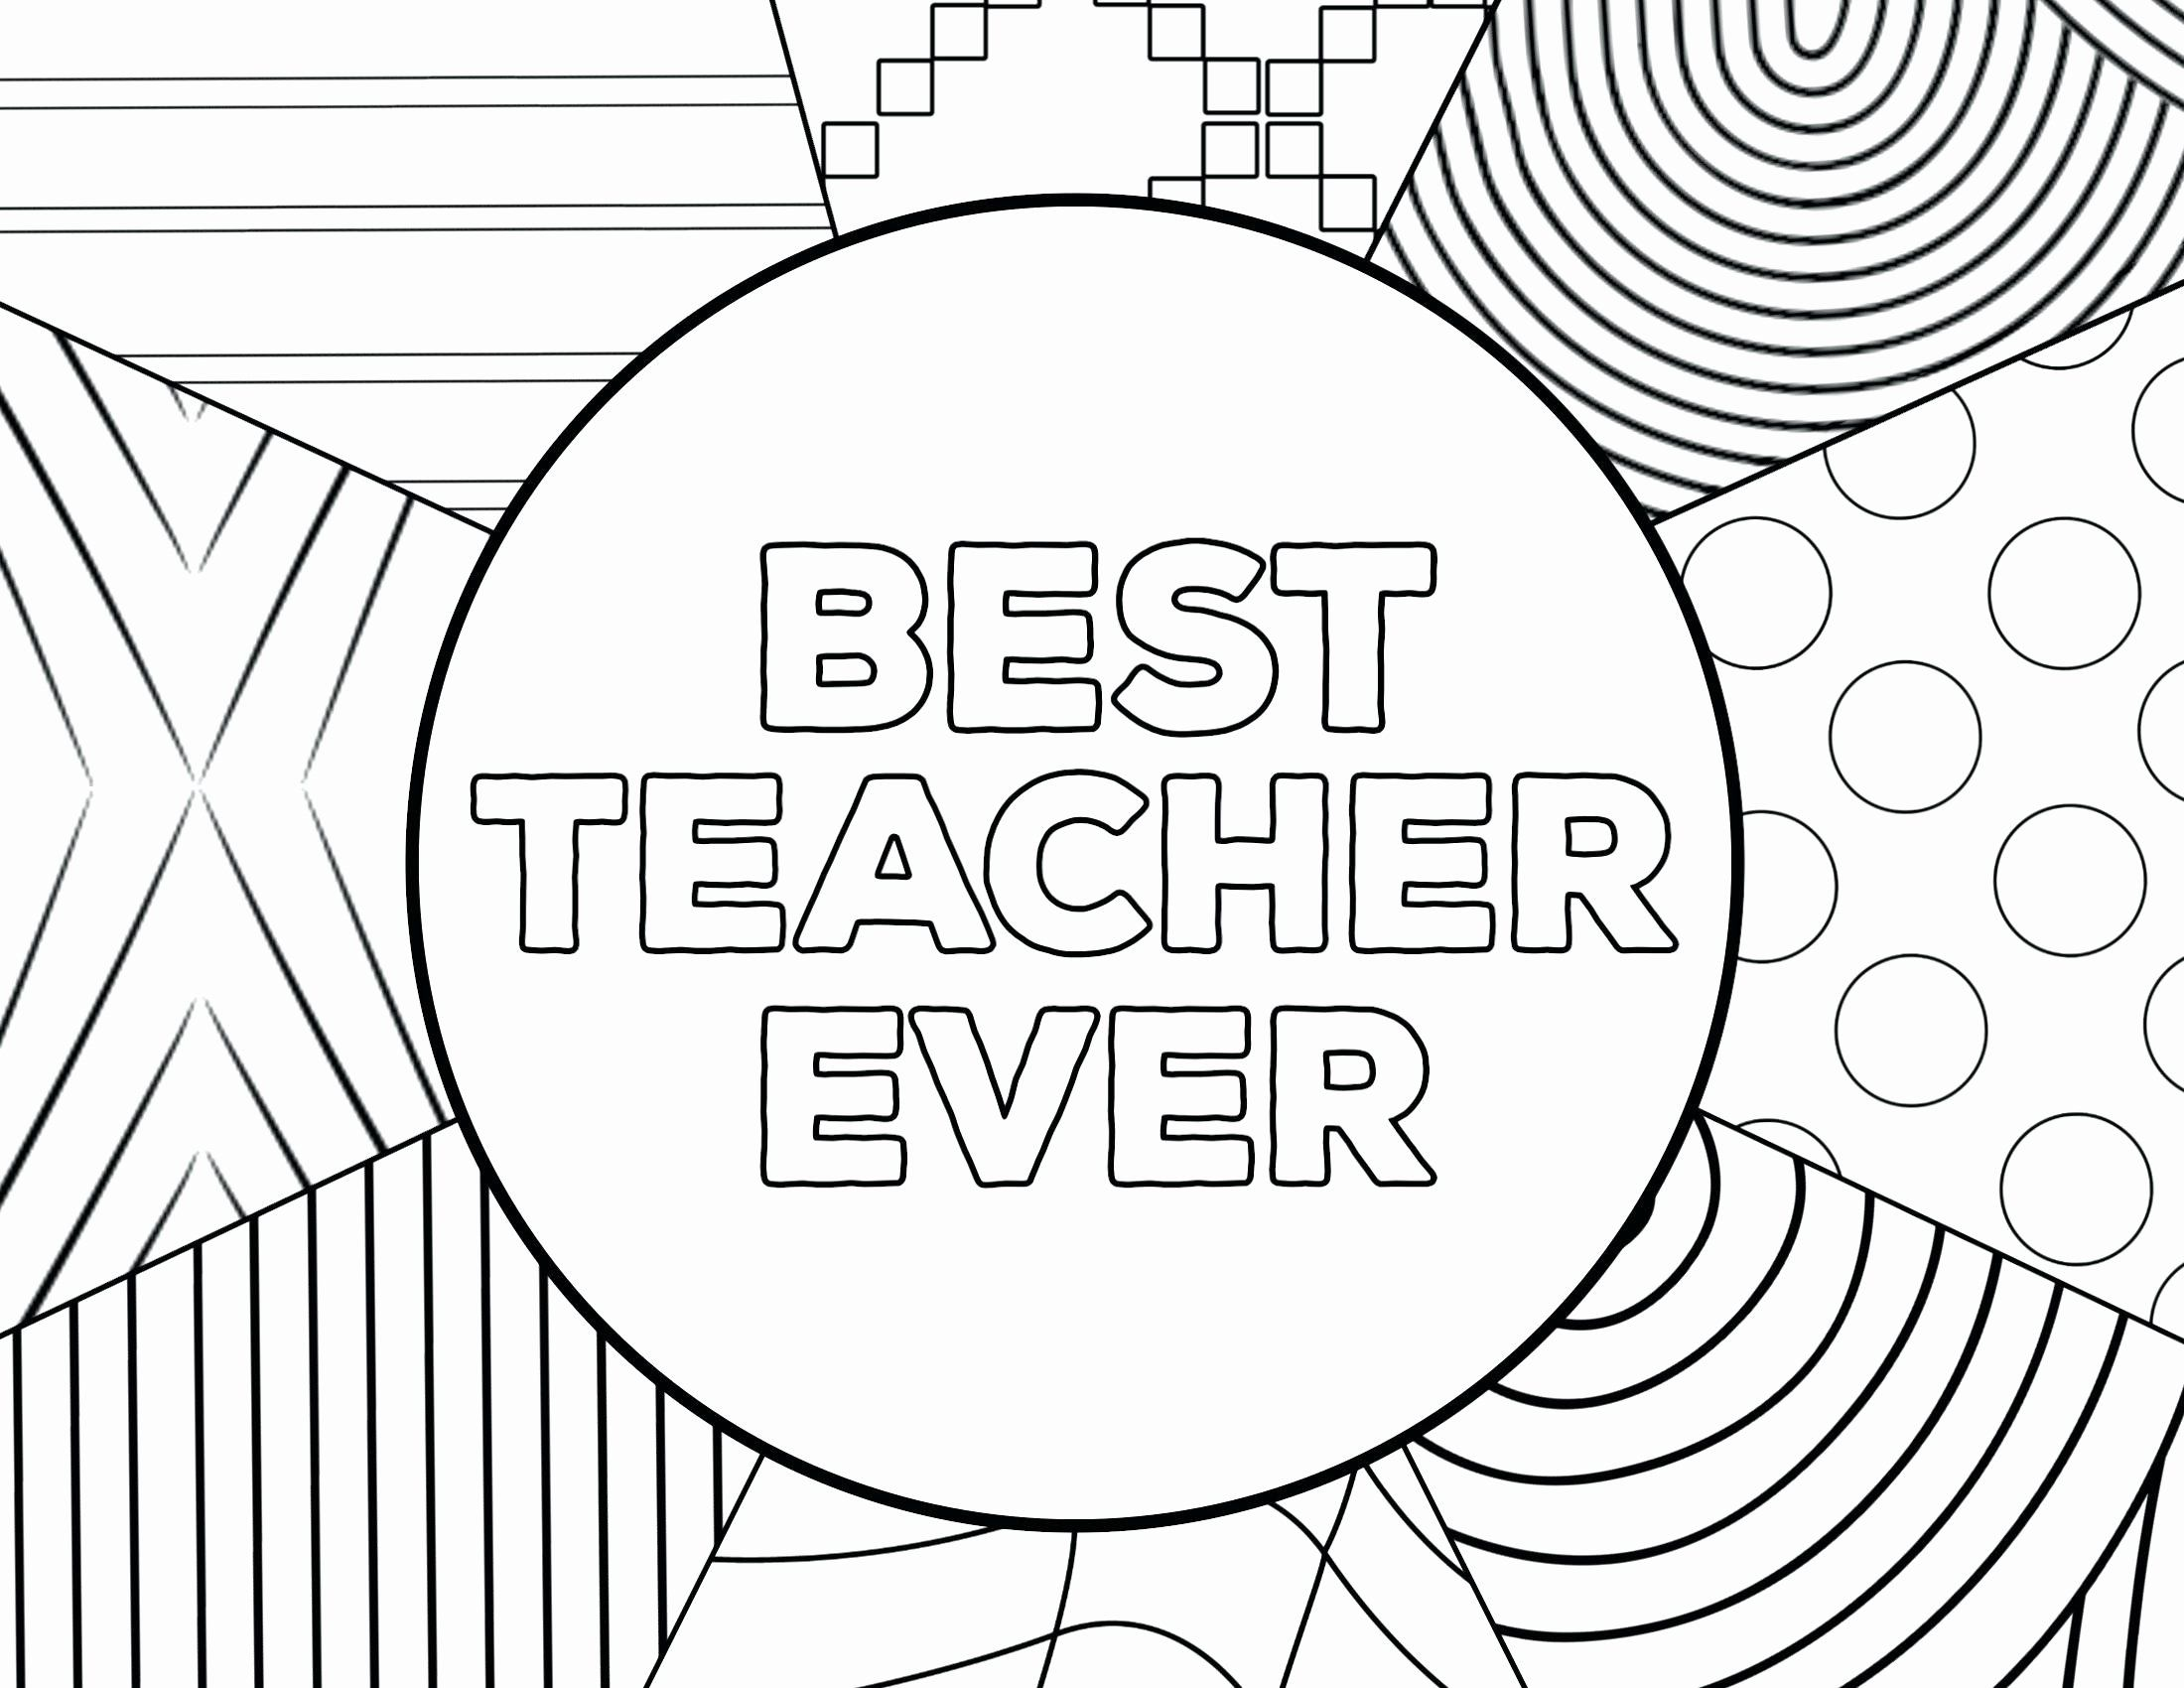 Teacher Appreciation Day Cards Luxury Thank You Teacher Coloring Cards Eastbaypa In 2020 Teacher Appreciation Teacher Appreciation Printables Teacher Thank You Cards